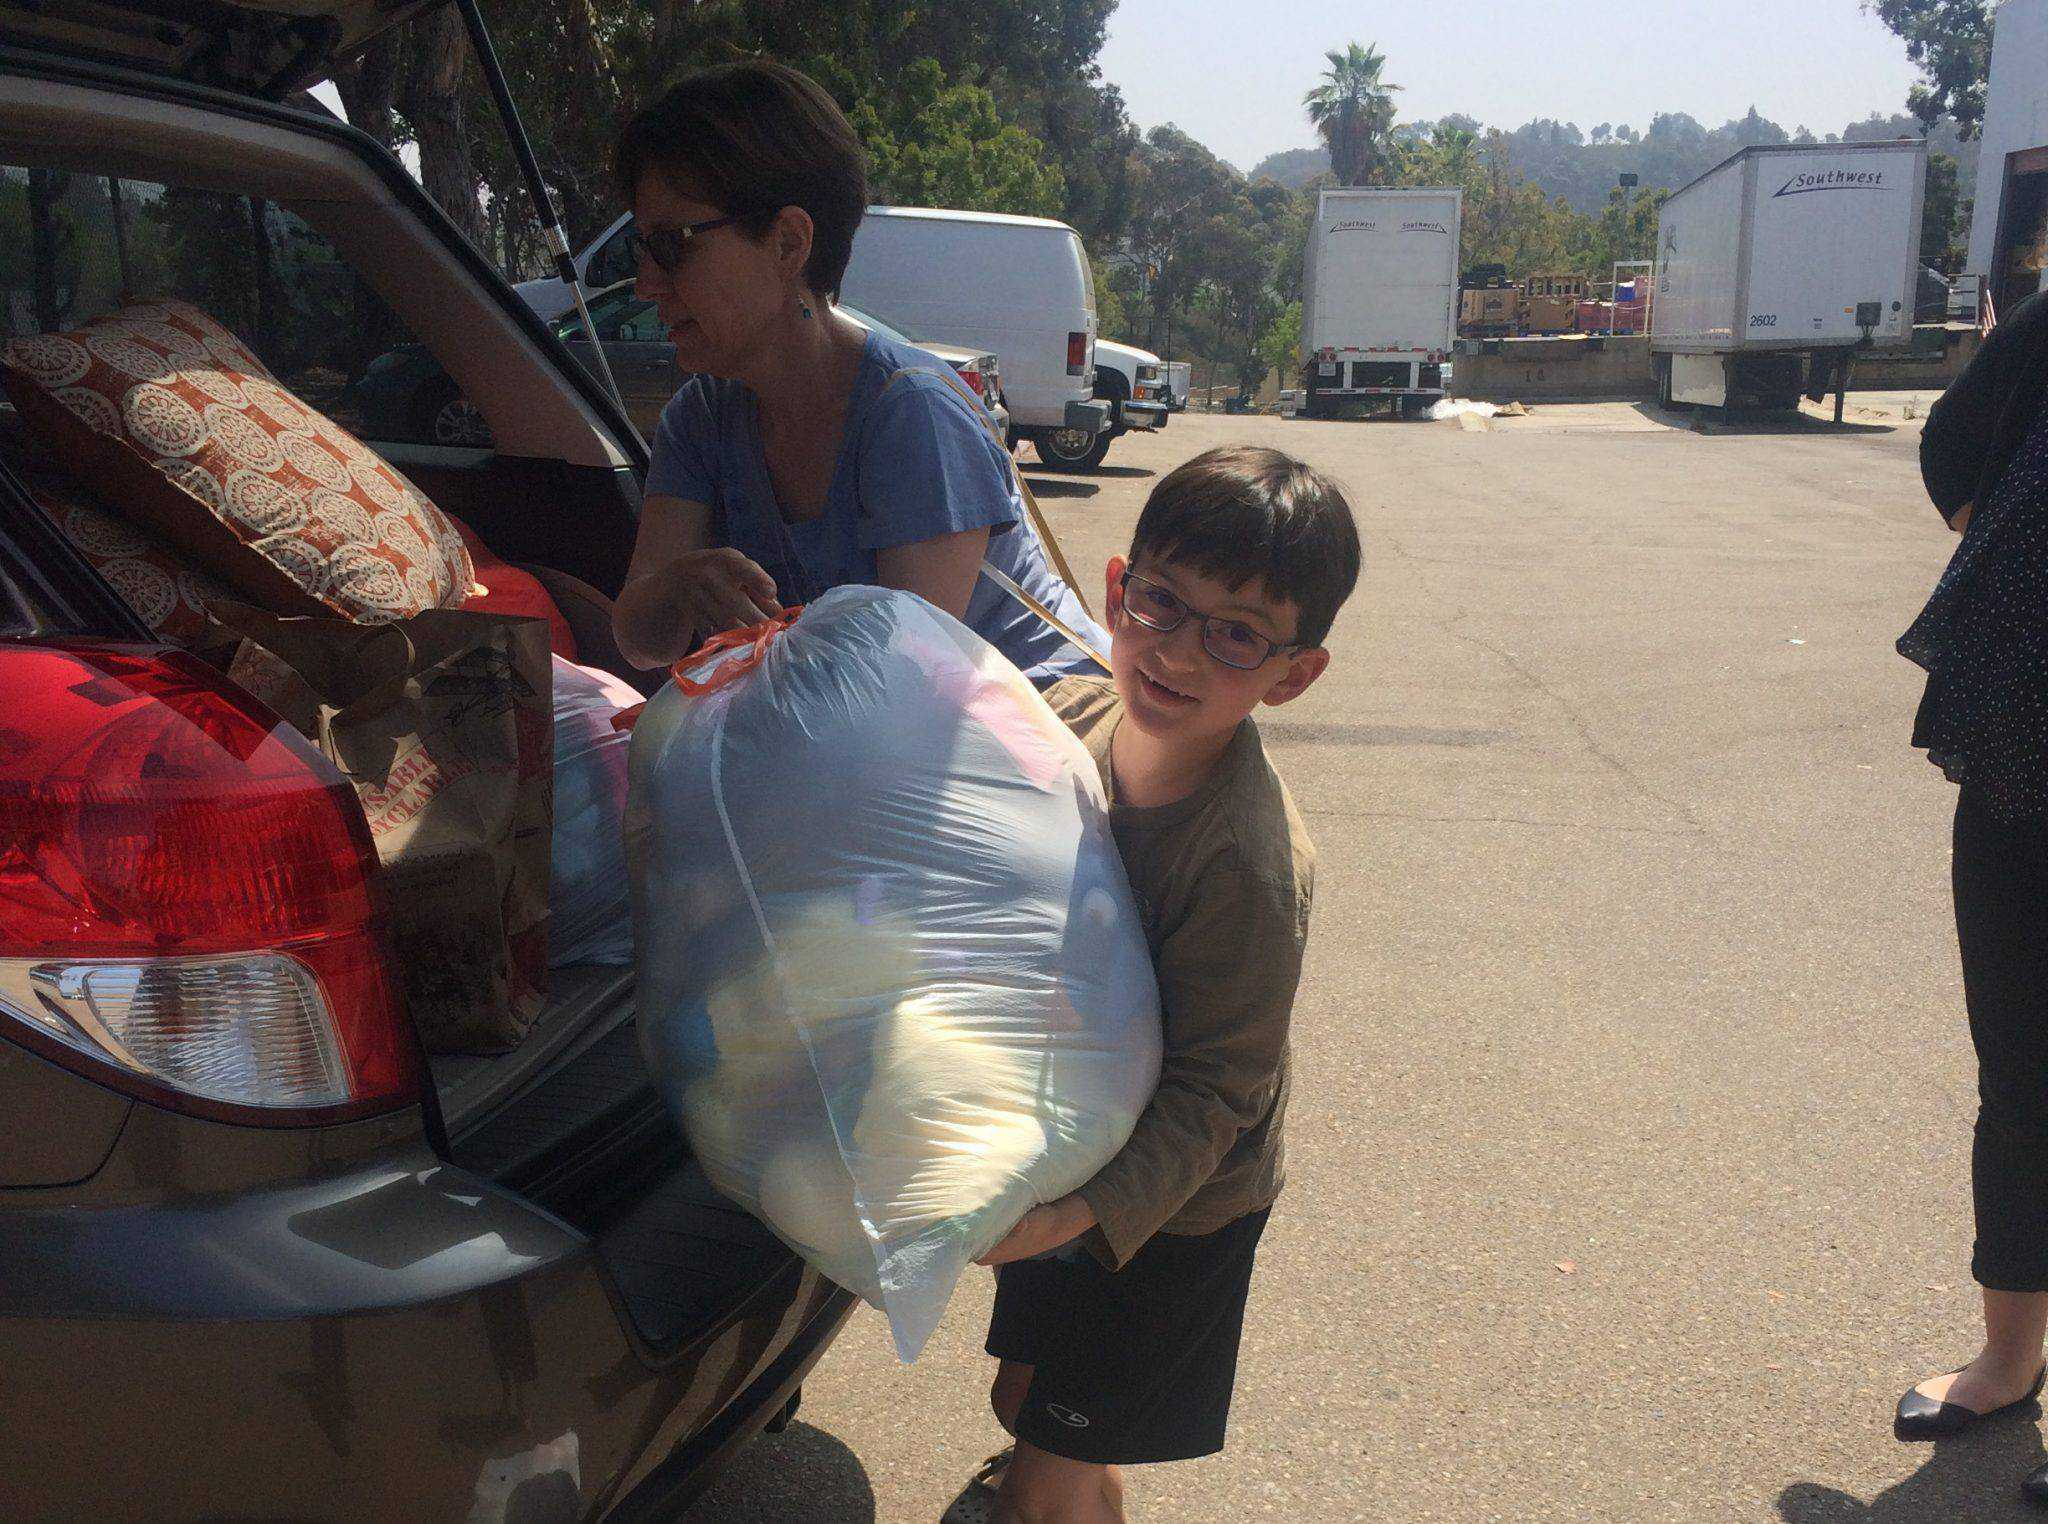 A young donor, Eli, donated over 5,000 shoes after holding a donation drive for Father Joes Villages.